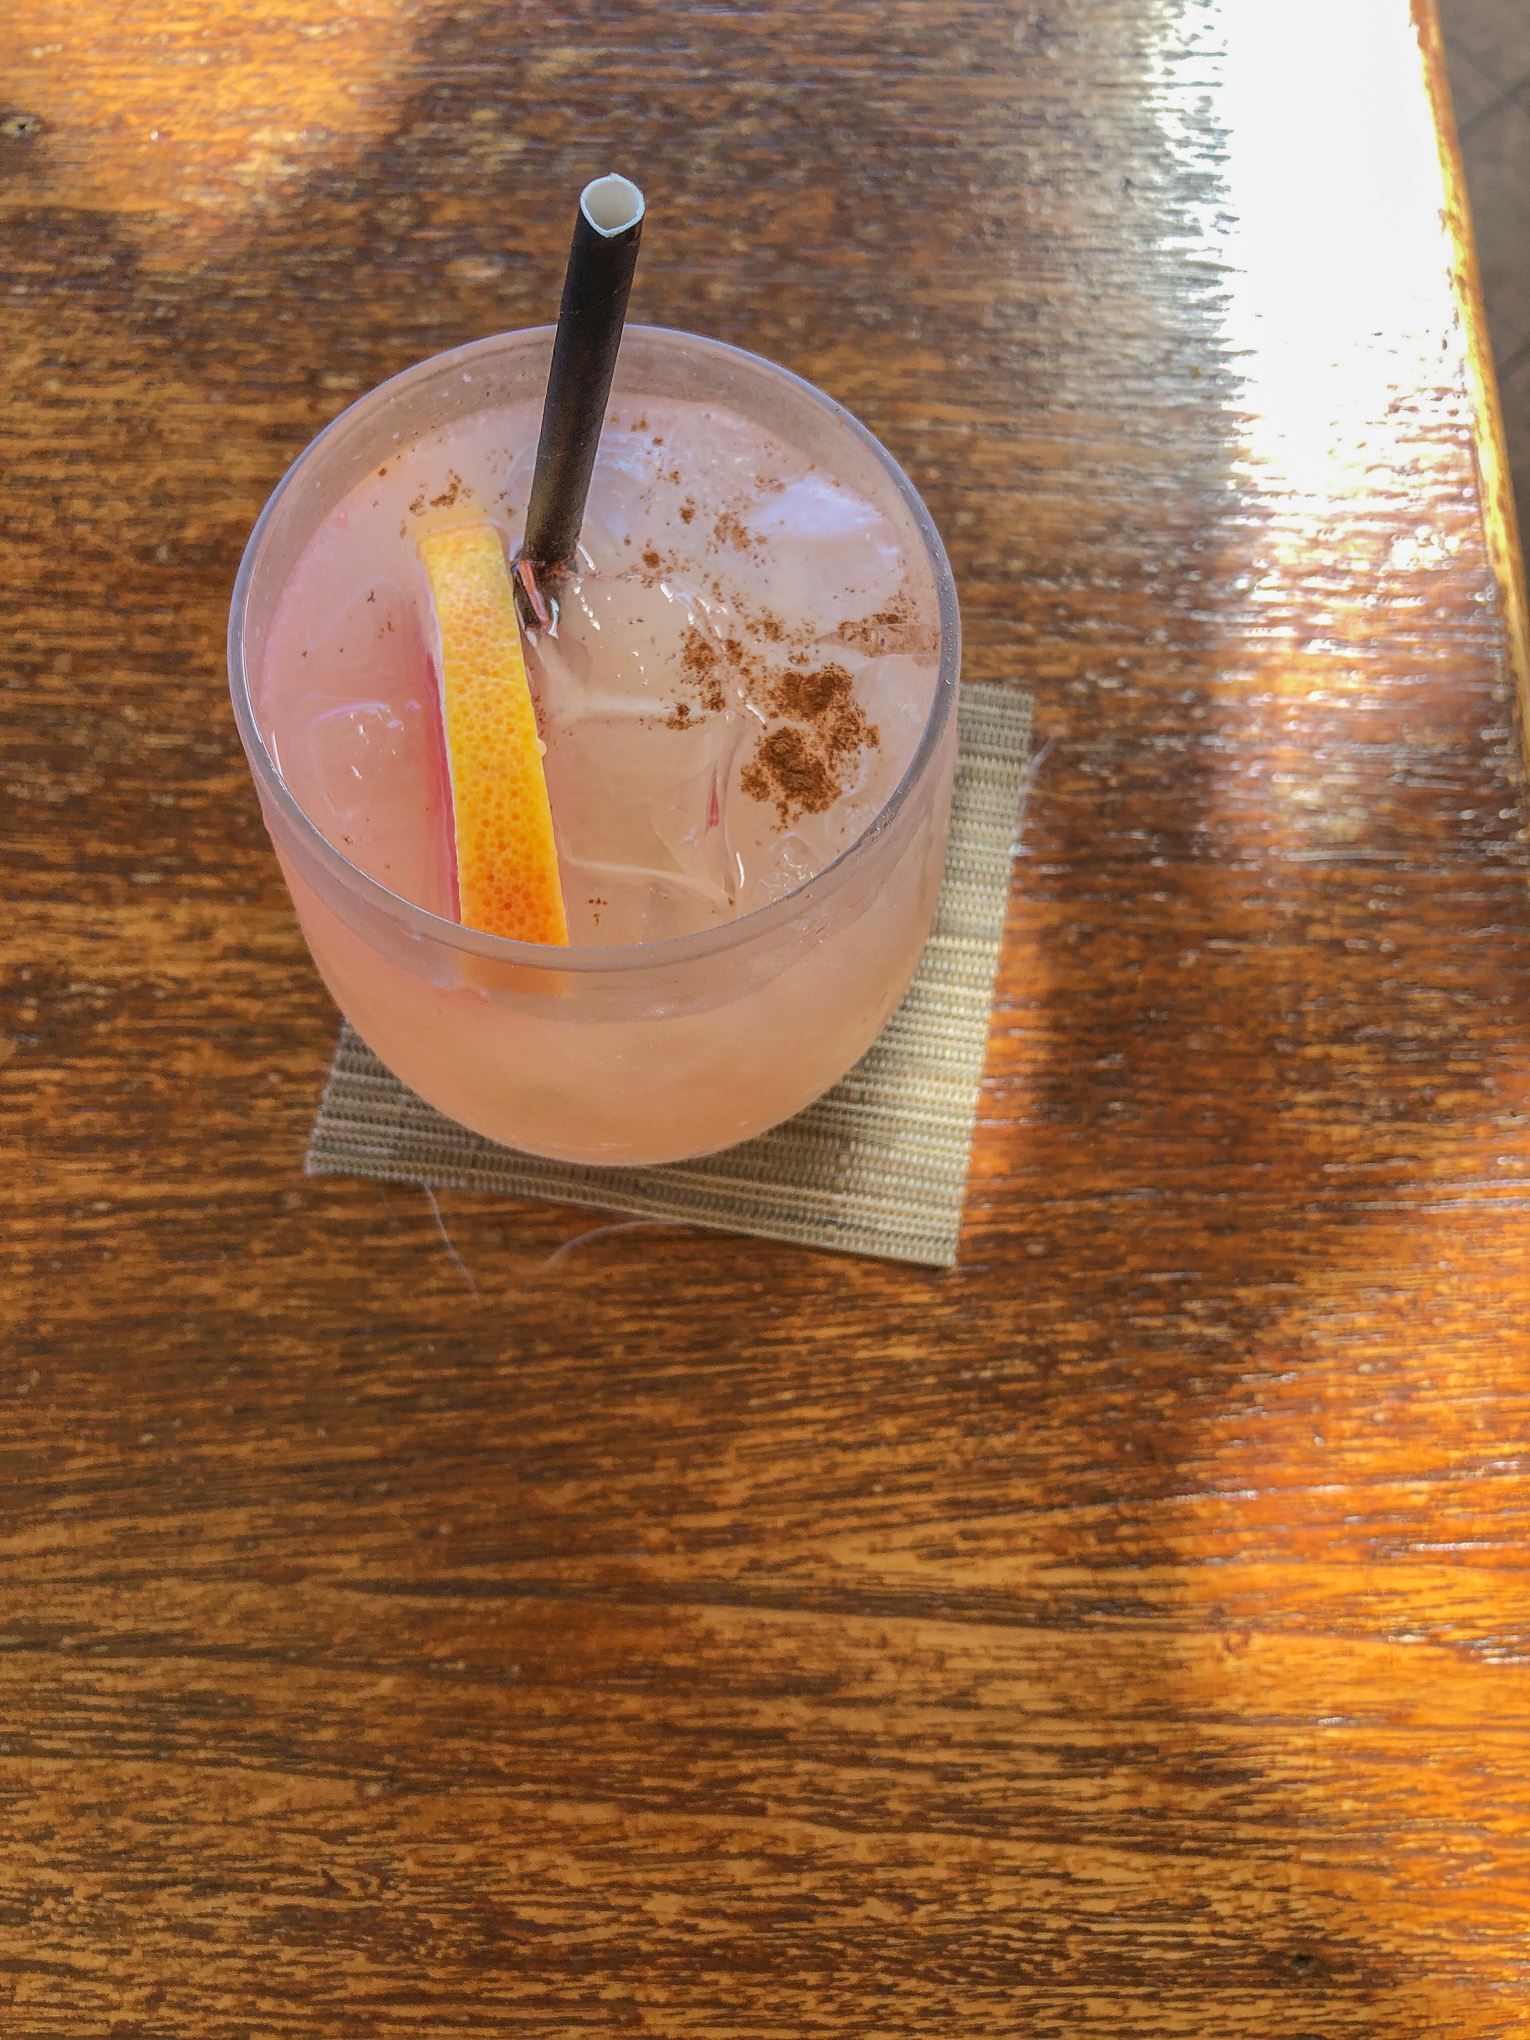 Tropical grapefruit drink in glass with straw and garnish